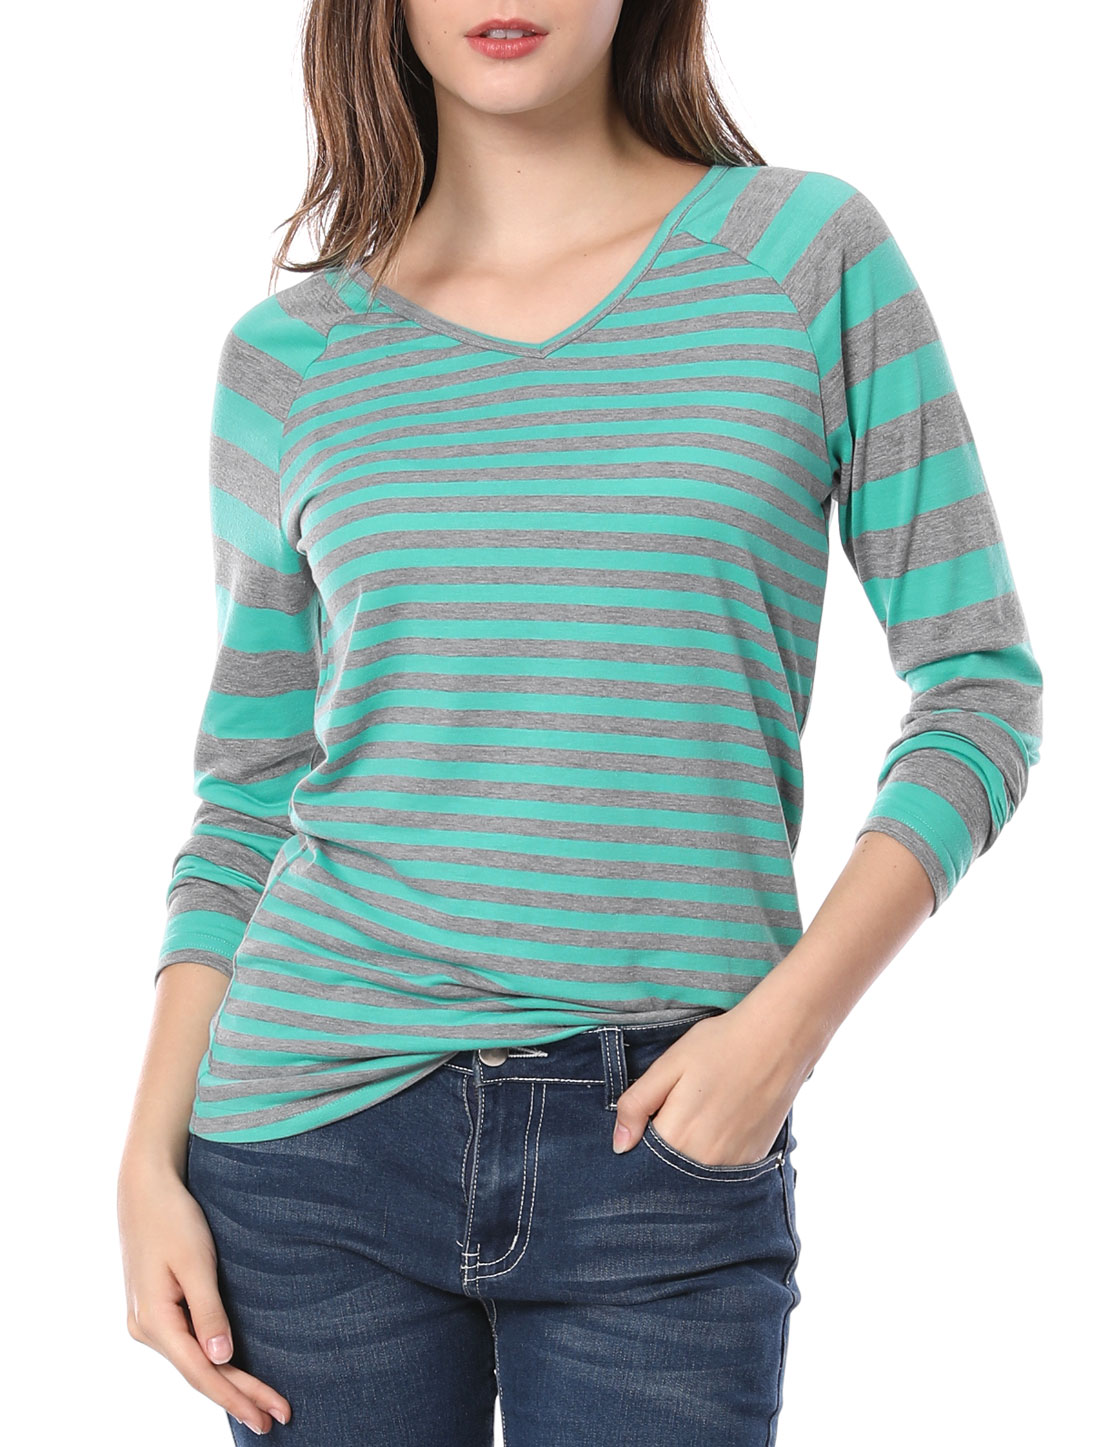 Allegra K Women Striped Long Raglan Sleeves V Neck Top Green XS